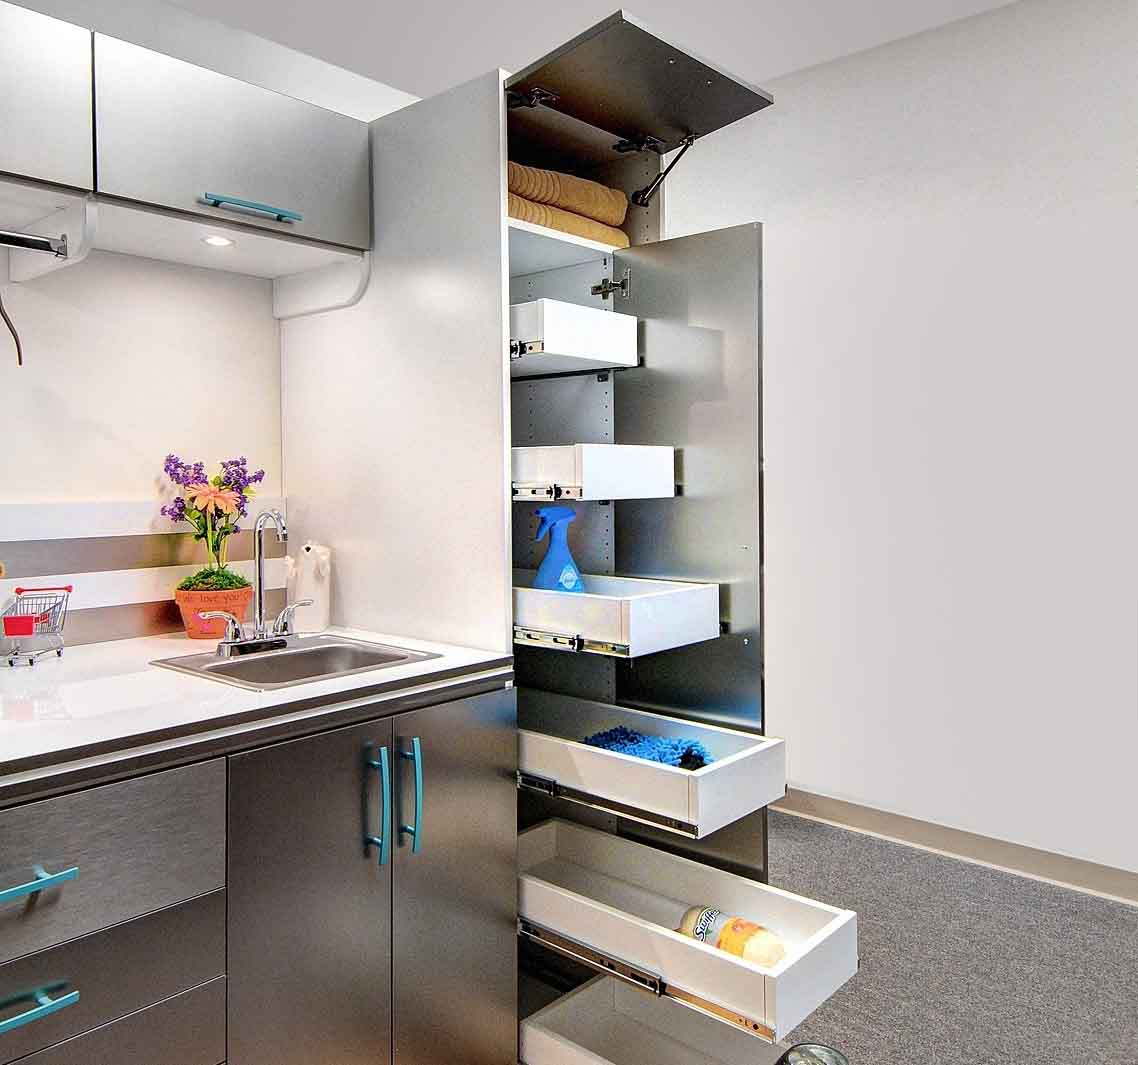 Laundry Room roll out drawers that slide towards you